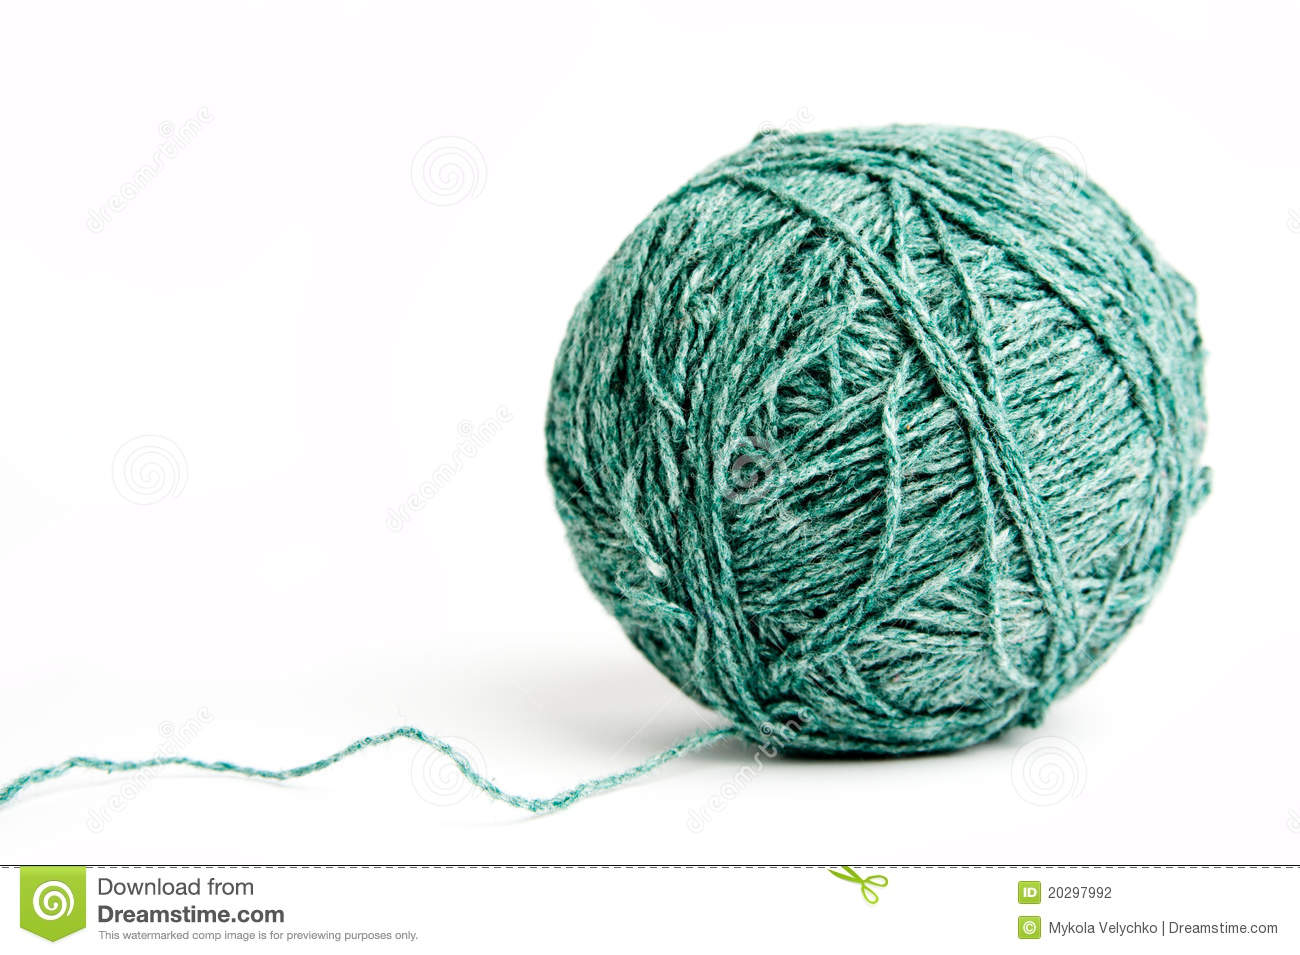 ball of yarn - photo #8